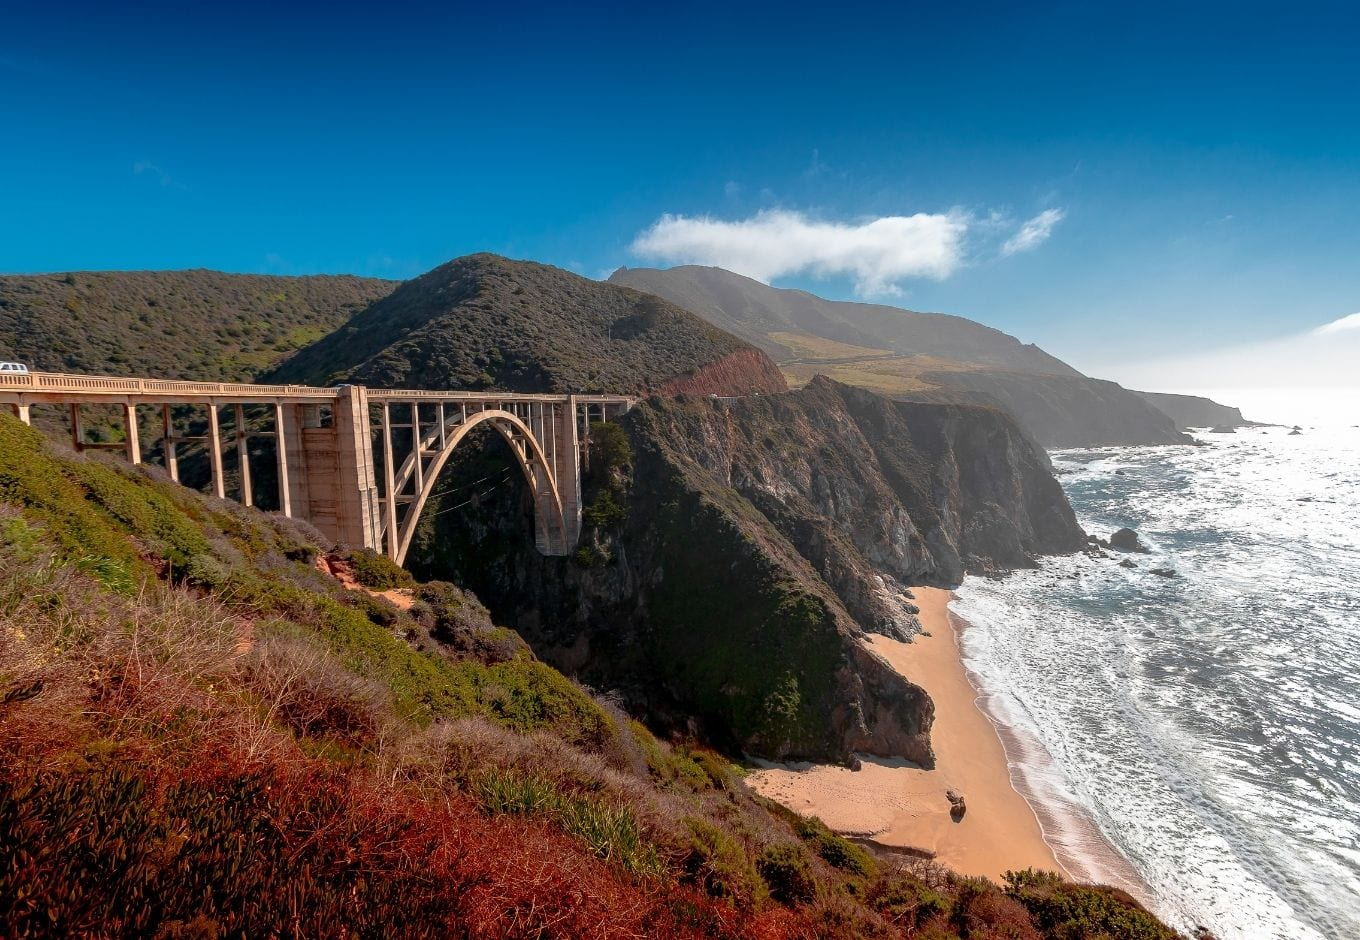 The Big Sur, on the Pacific Coast Highway, in California.